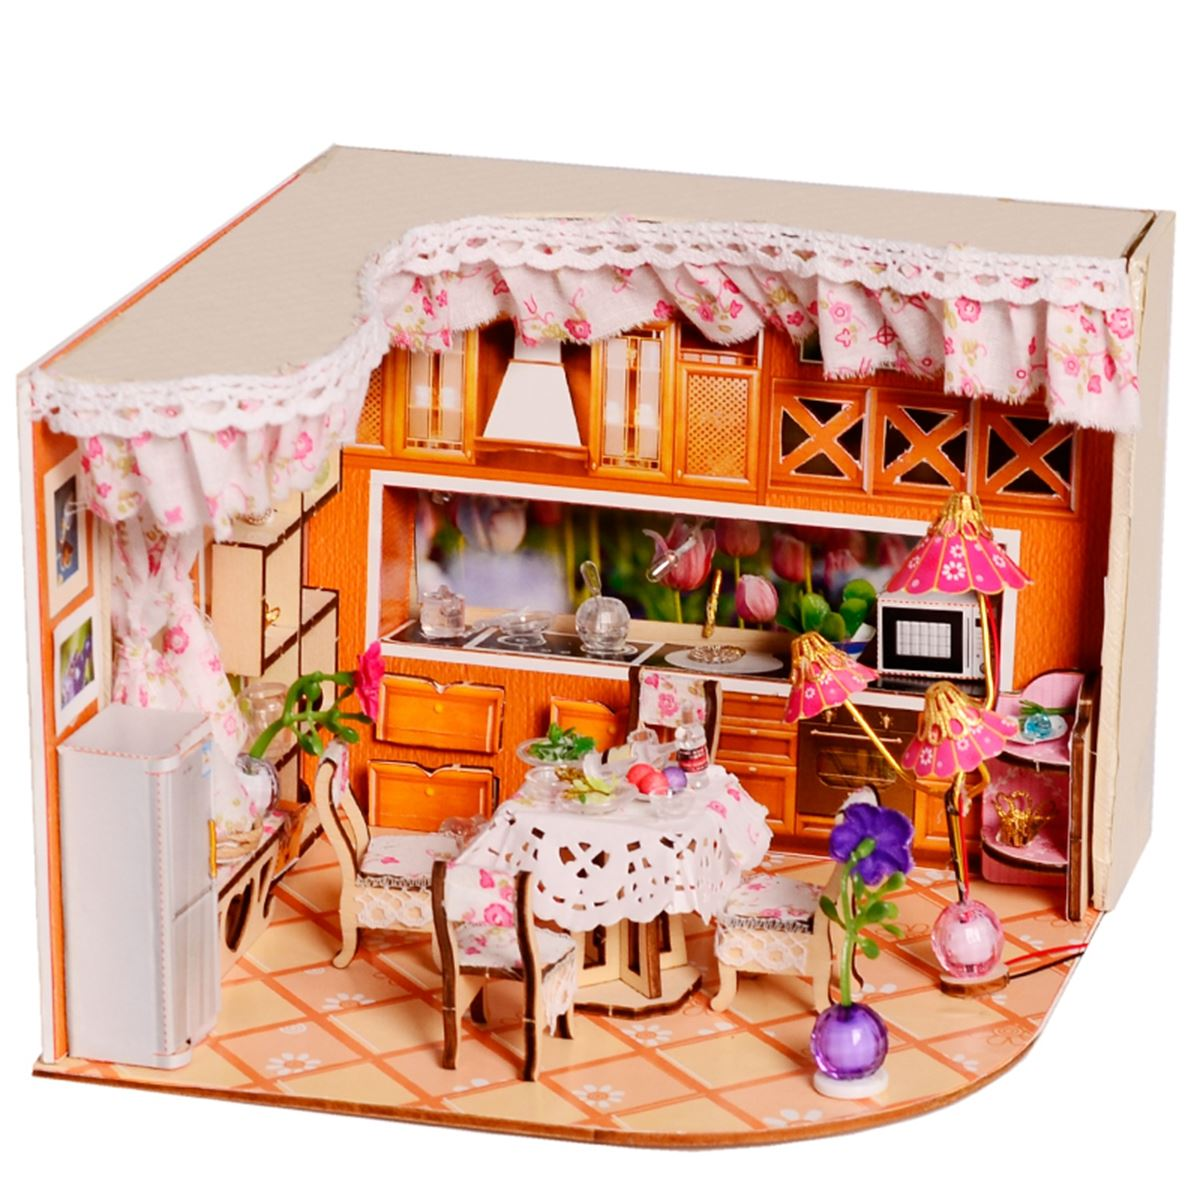 Lovely merry sweet home habitat room diy dollhouse kit with led lovely merry sweet home habitat room diy dollhouse kit with led light wood decoration miniature dollhouse toys gift in doll houses from toys hobbies on solutioingenieria Images